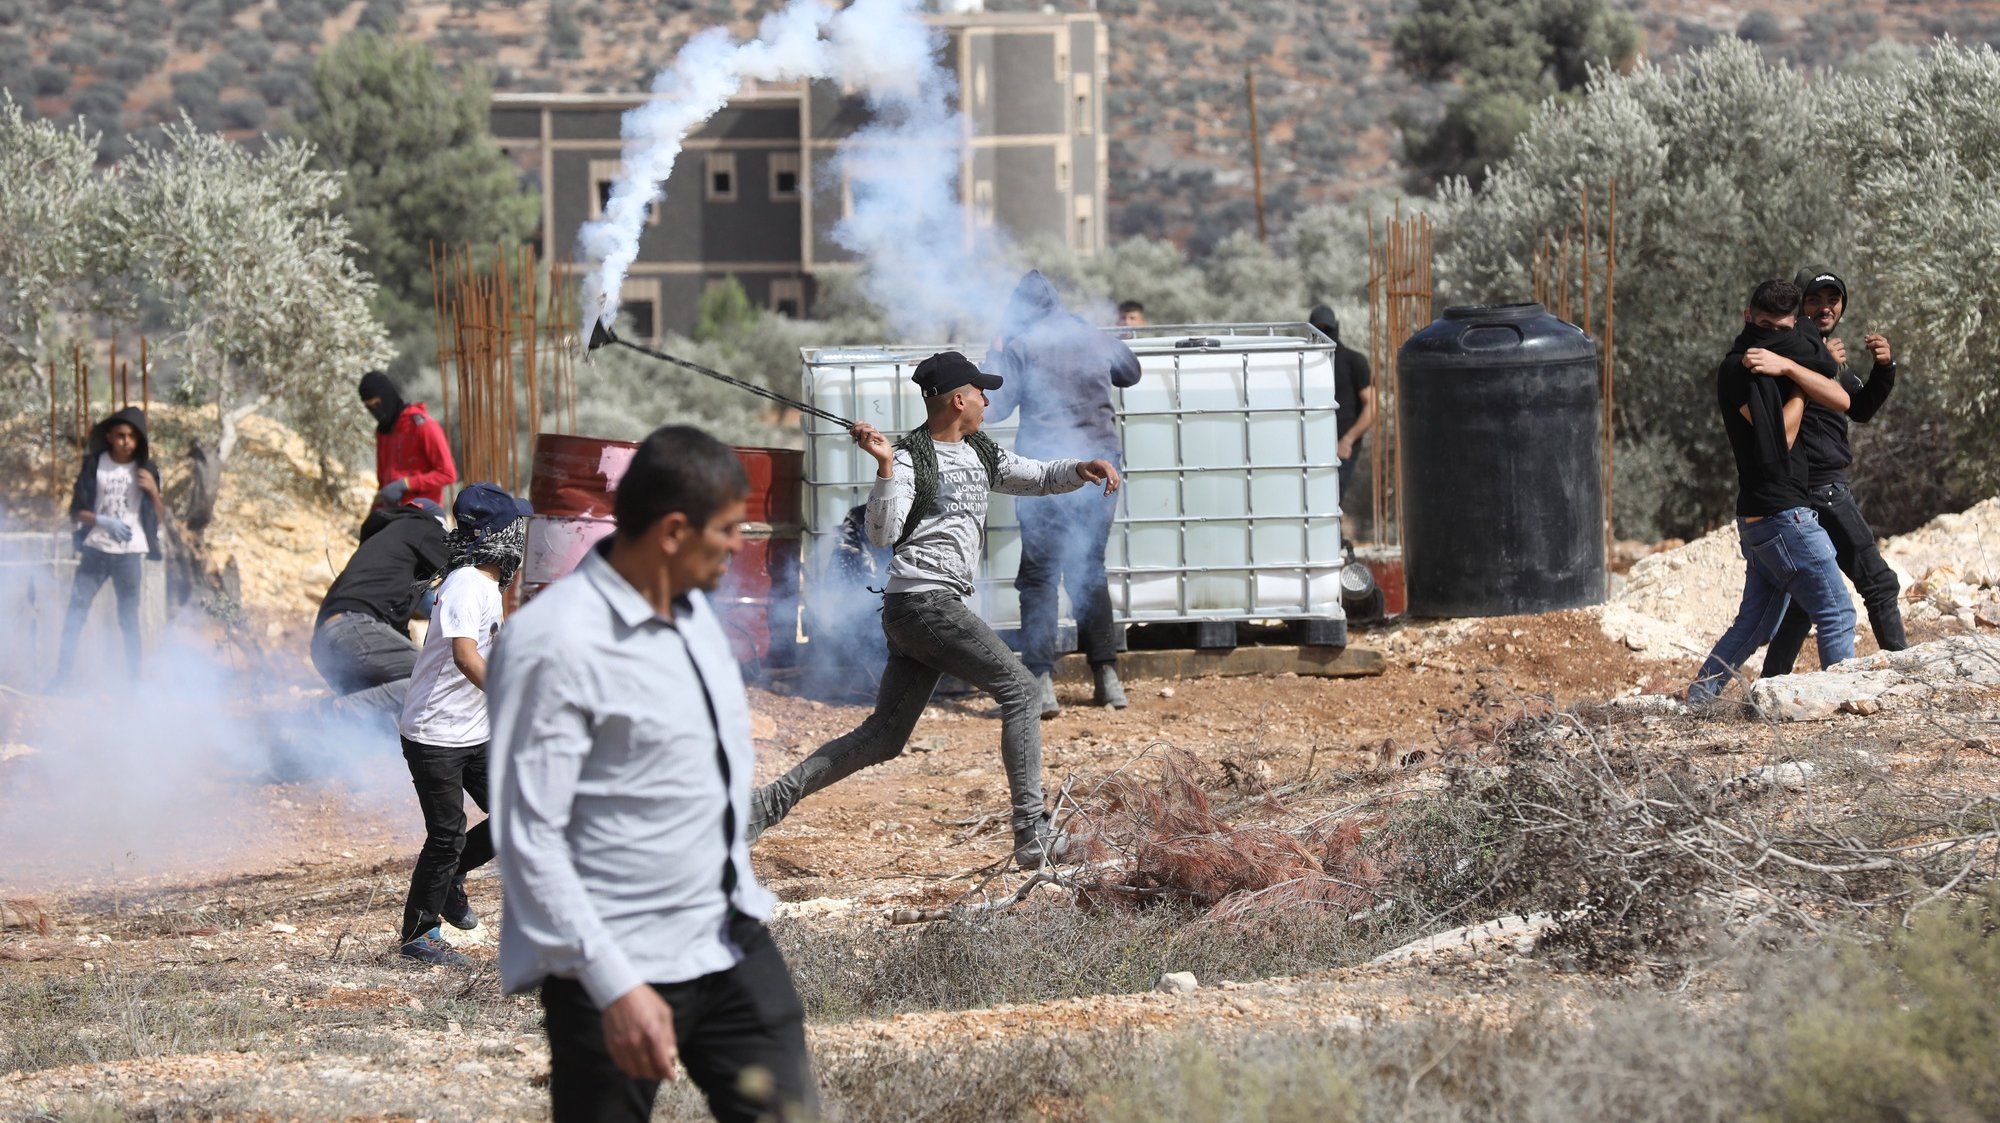 epa09485731 A Palestinian protestor throws back a tear gas grenade during clashes with Israeli security forces after a protest against Israeli settlements, on the lands of Beita village near the West Bank city of Nablus, 24 September 2021.  EPA/ALAA BADARNEH